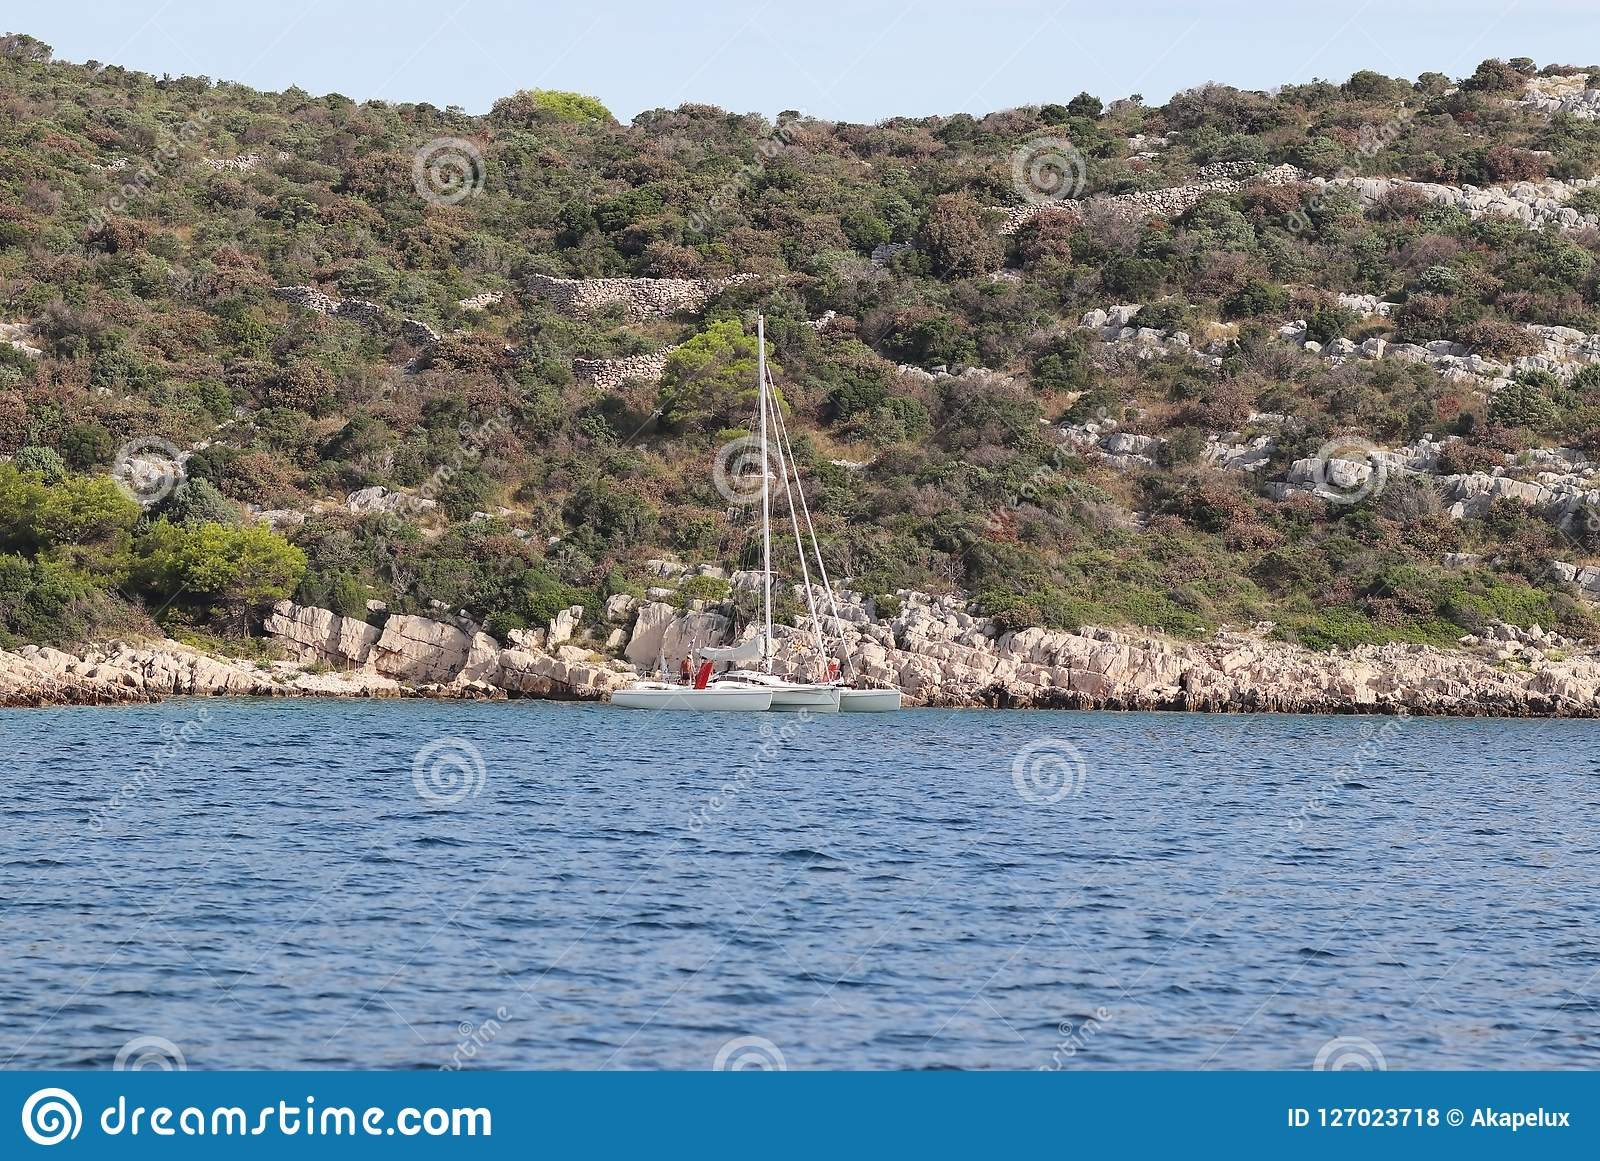 A small sailing trimaran on the background of the stony shore of the Croatian Riviera. The green island of the Adriatic Sea in Dal